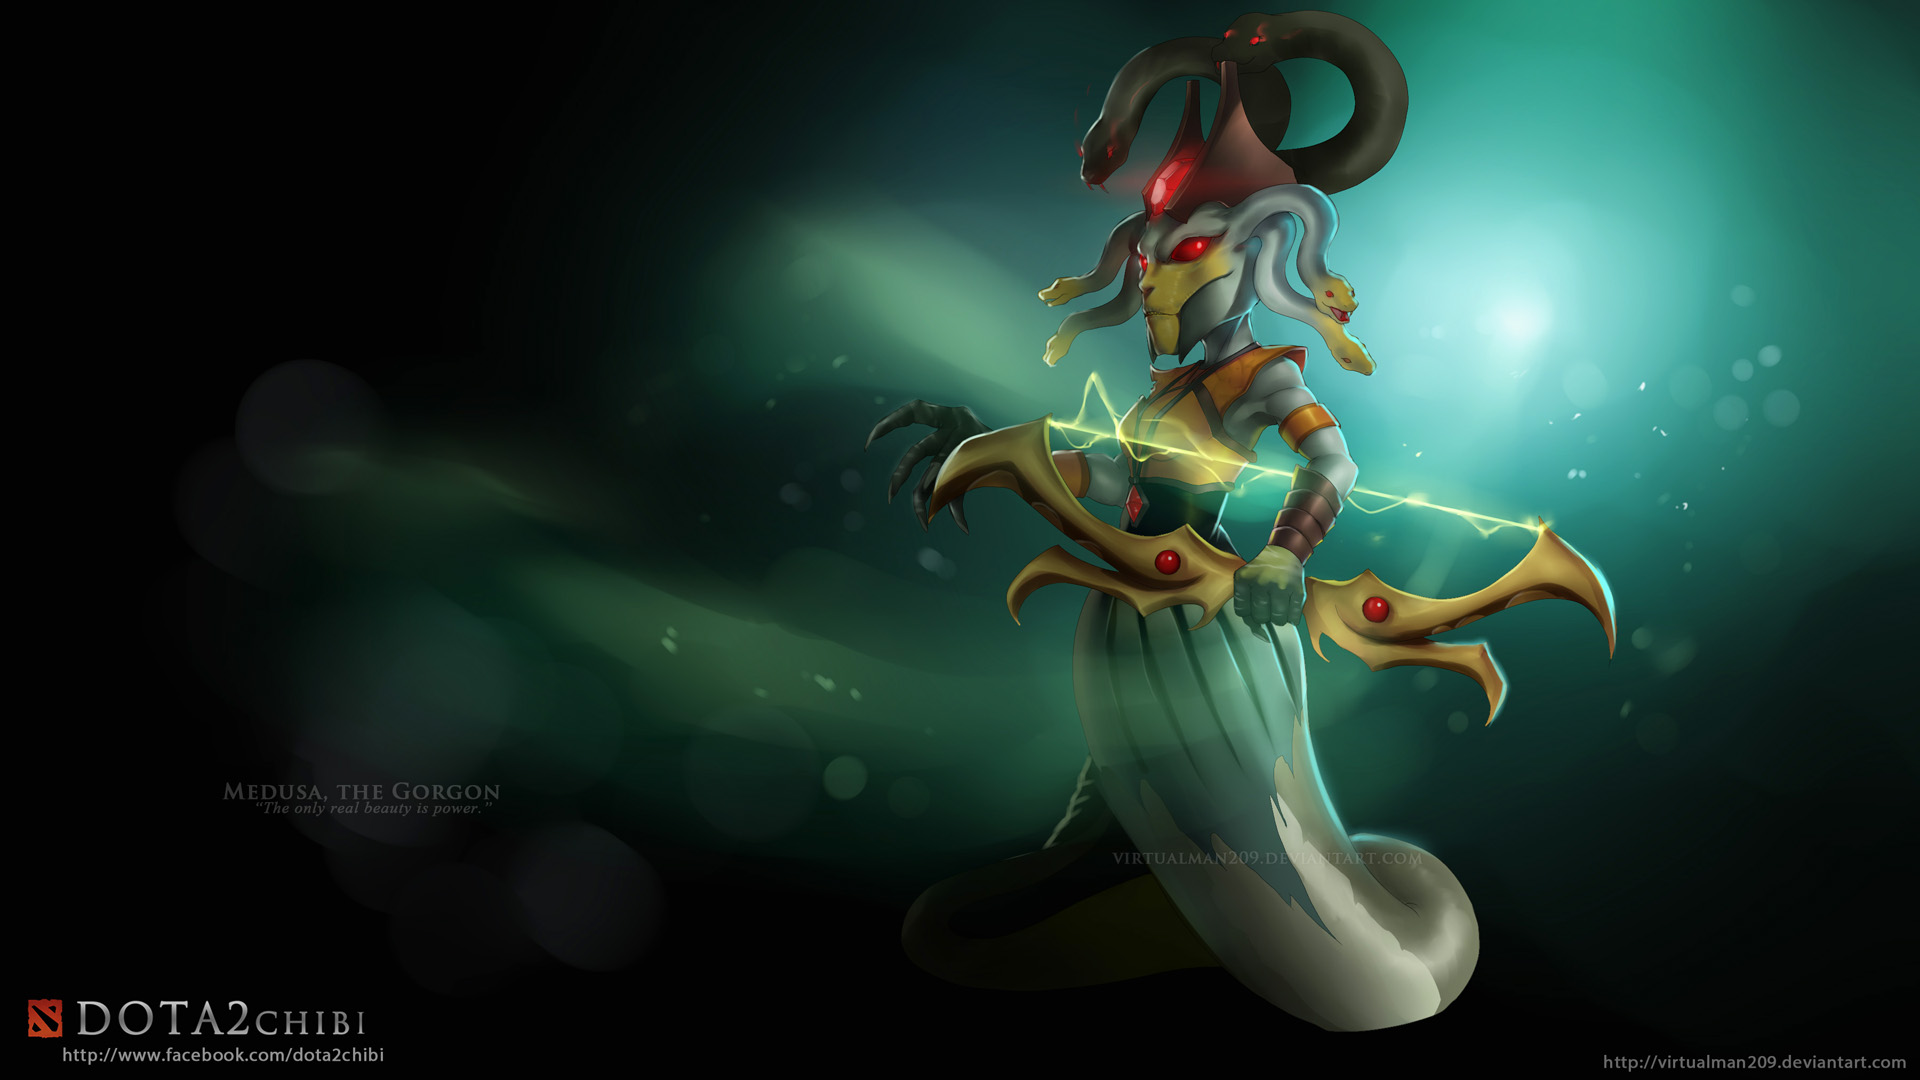 dota 2 chibi medusa 6h wallpaper hd